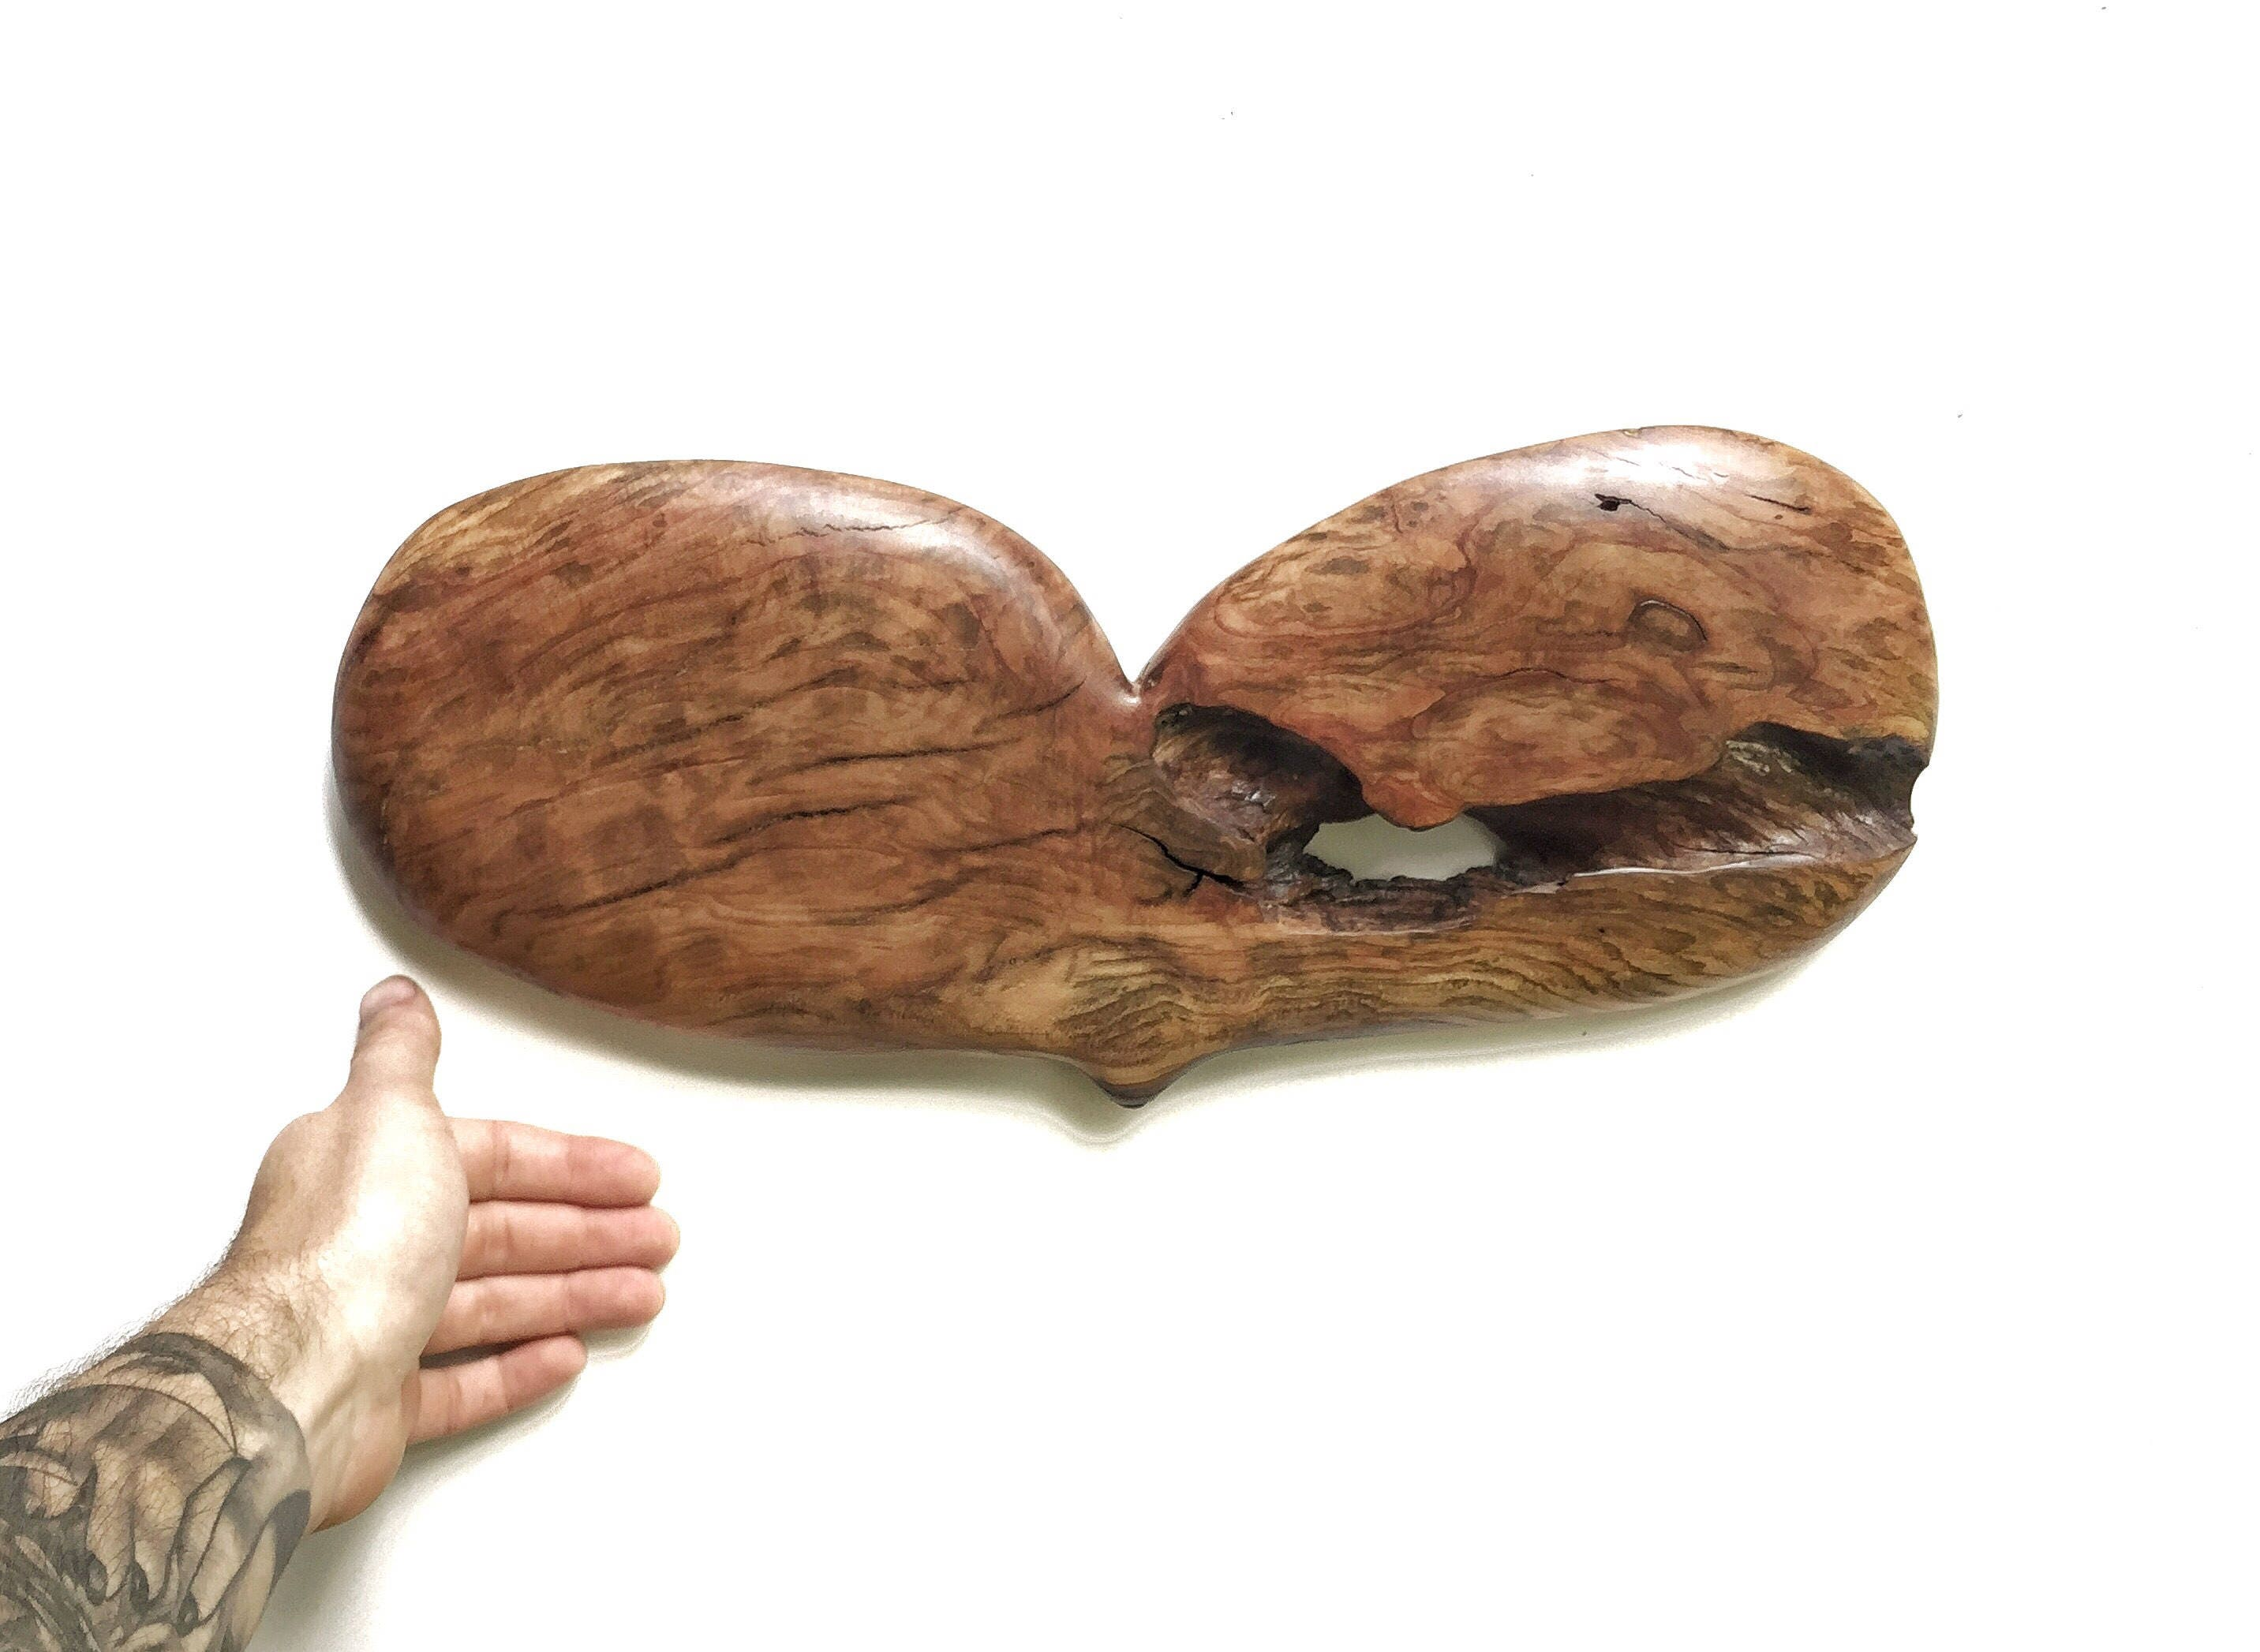 Heart Wood Carving Anniversary Gift Personalized 5th For Her Wife Wall Art Decor Handmade